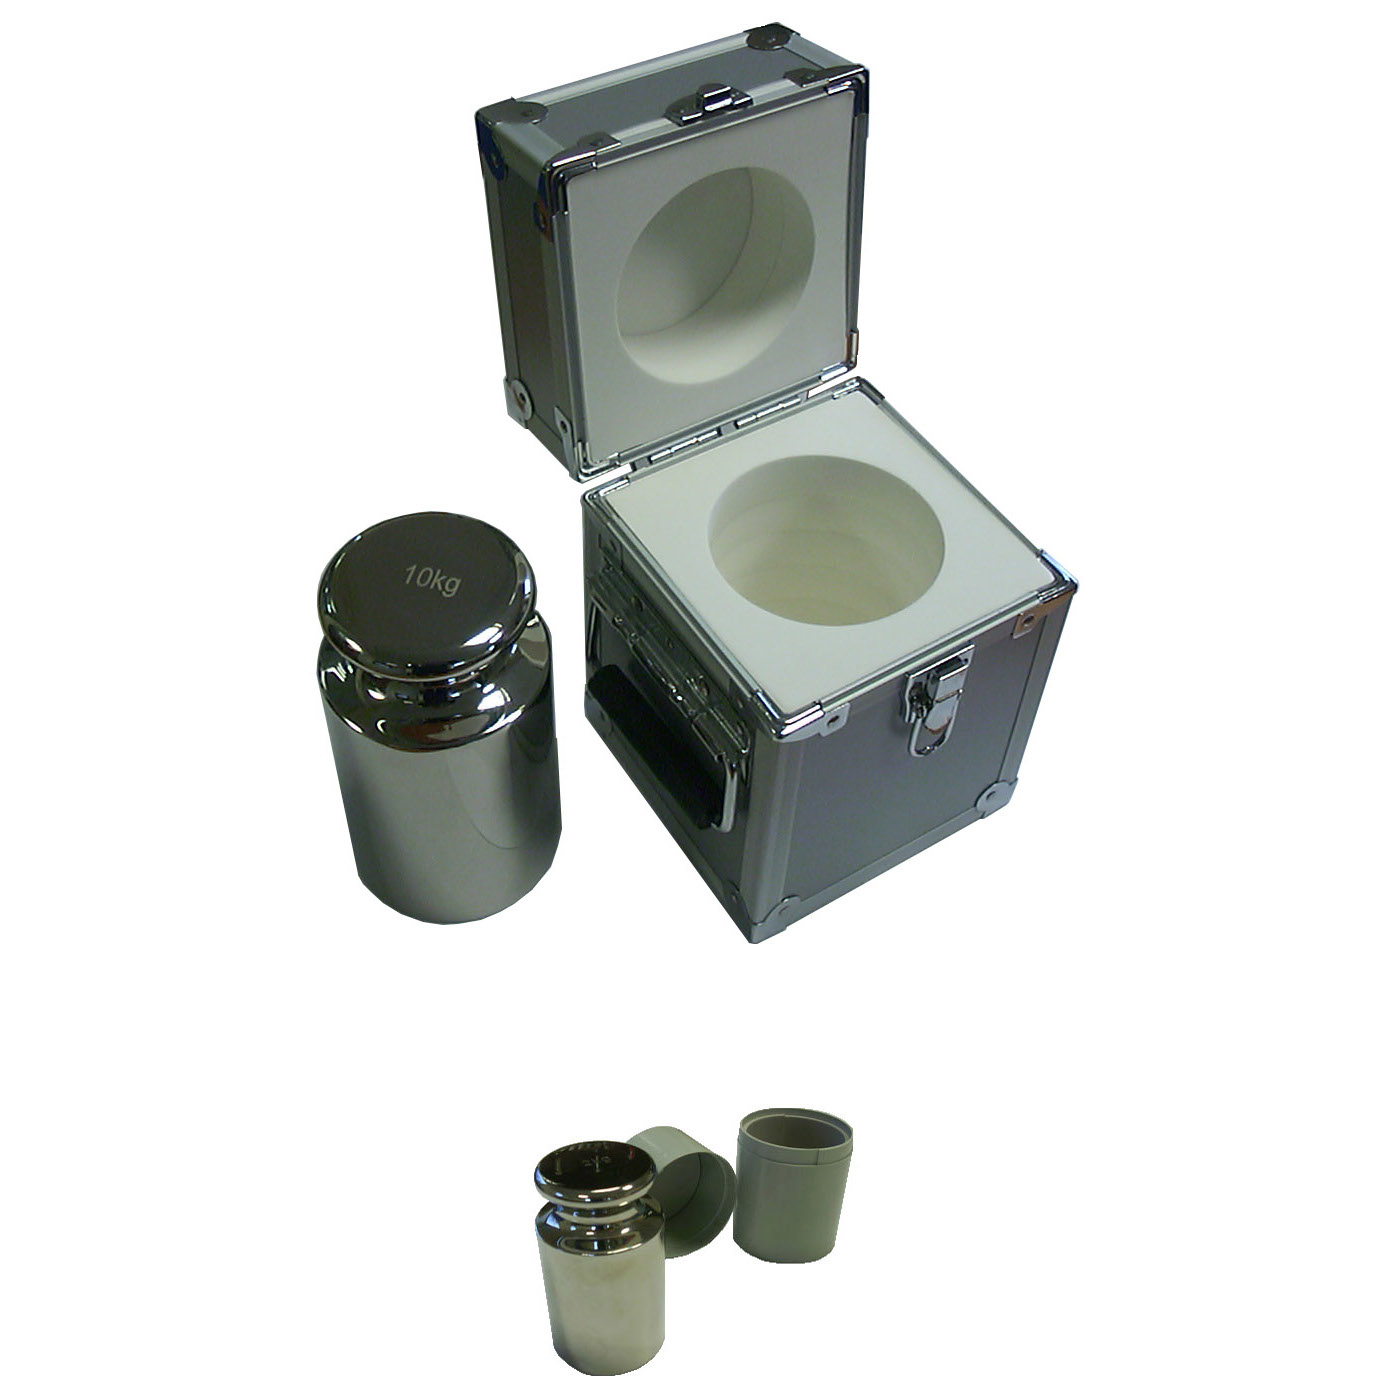 POLISHED STAINLESS STEEL M1 CALIBRATION TEST WEIGHTS with CONTAINERS